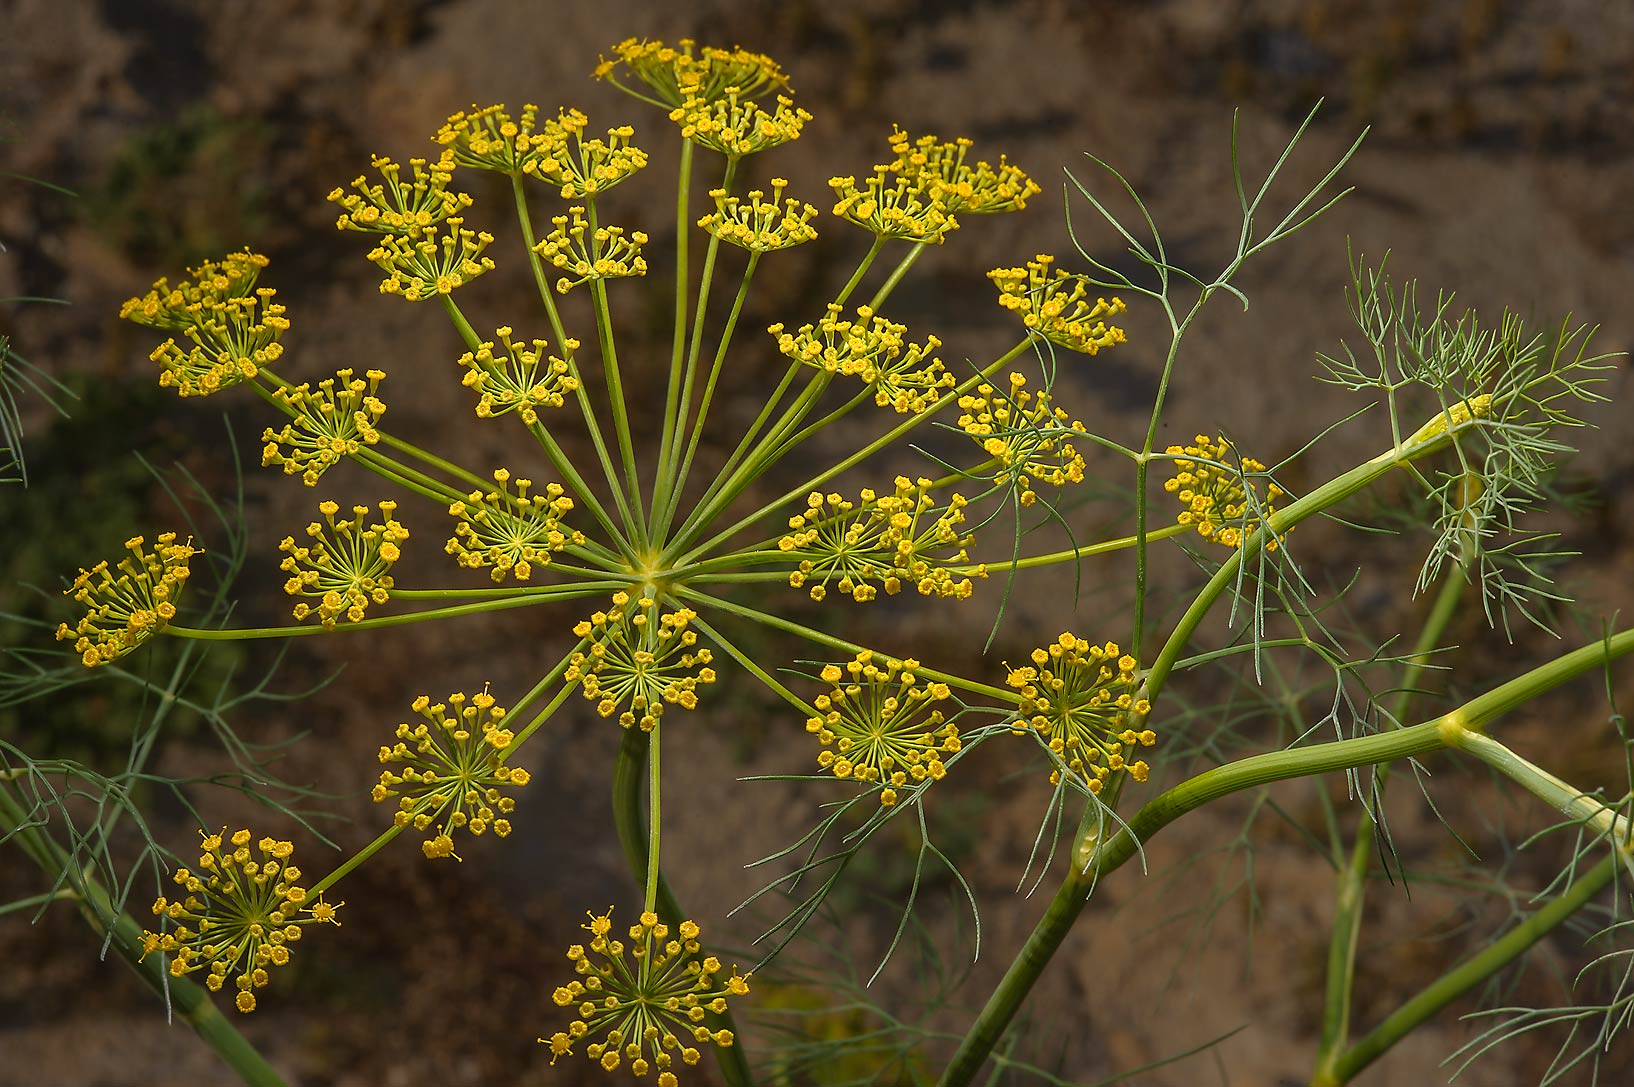 Seeds of dill (Anethum graveolens, local names...of Salwa Rd. in south-western Qatar